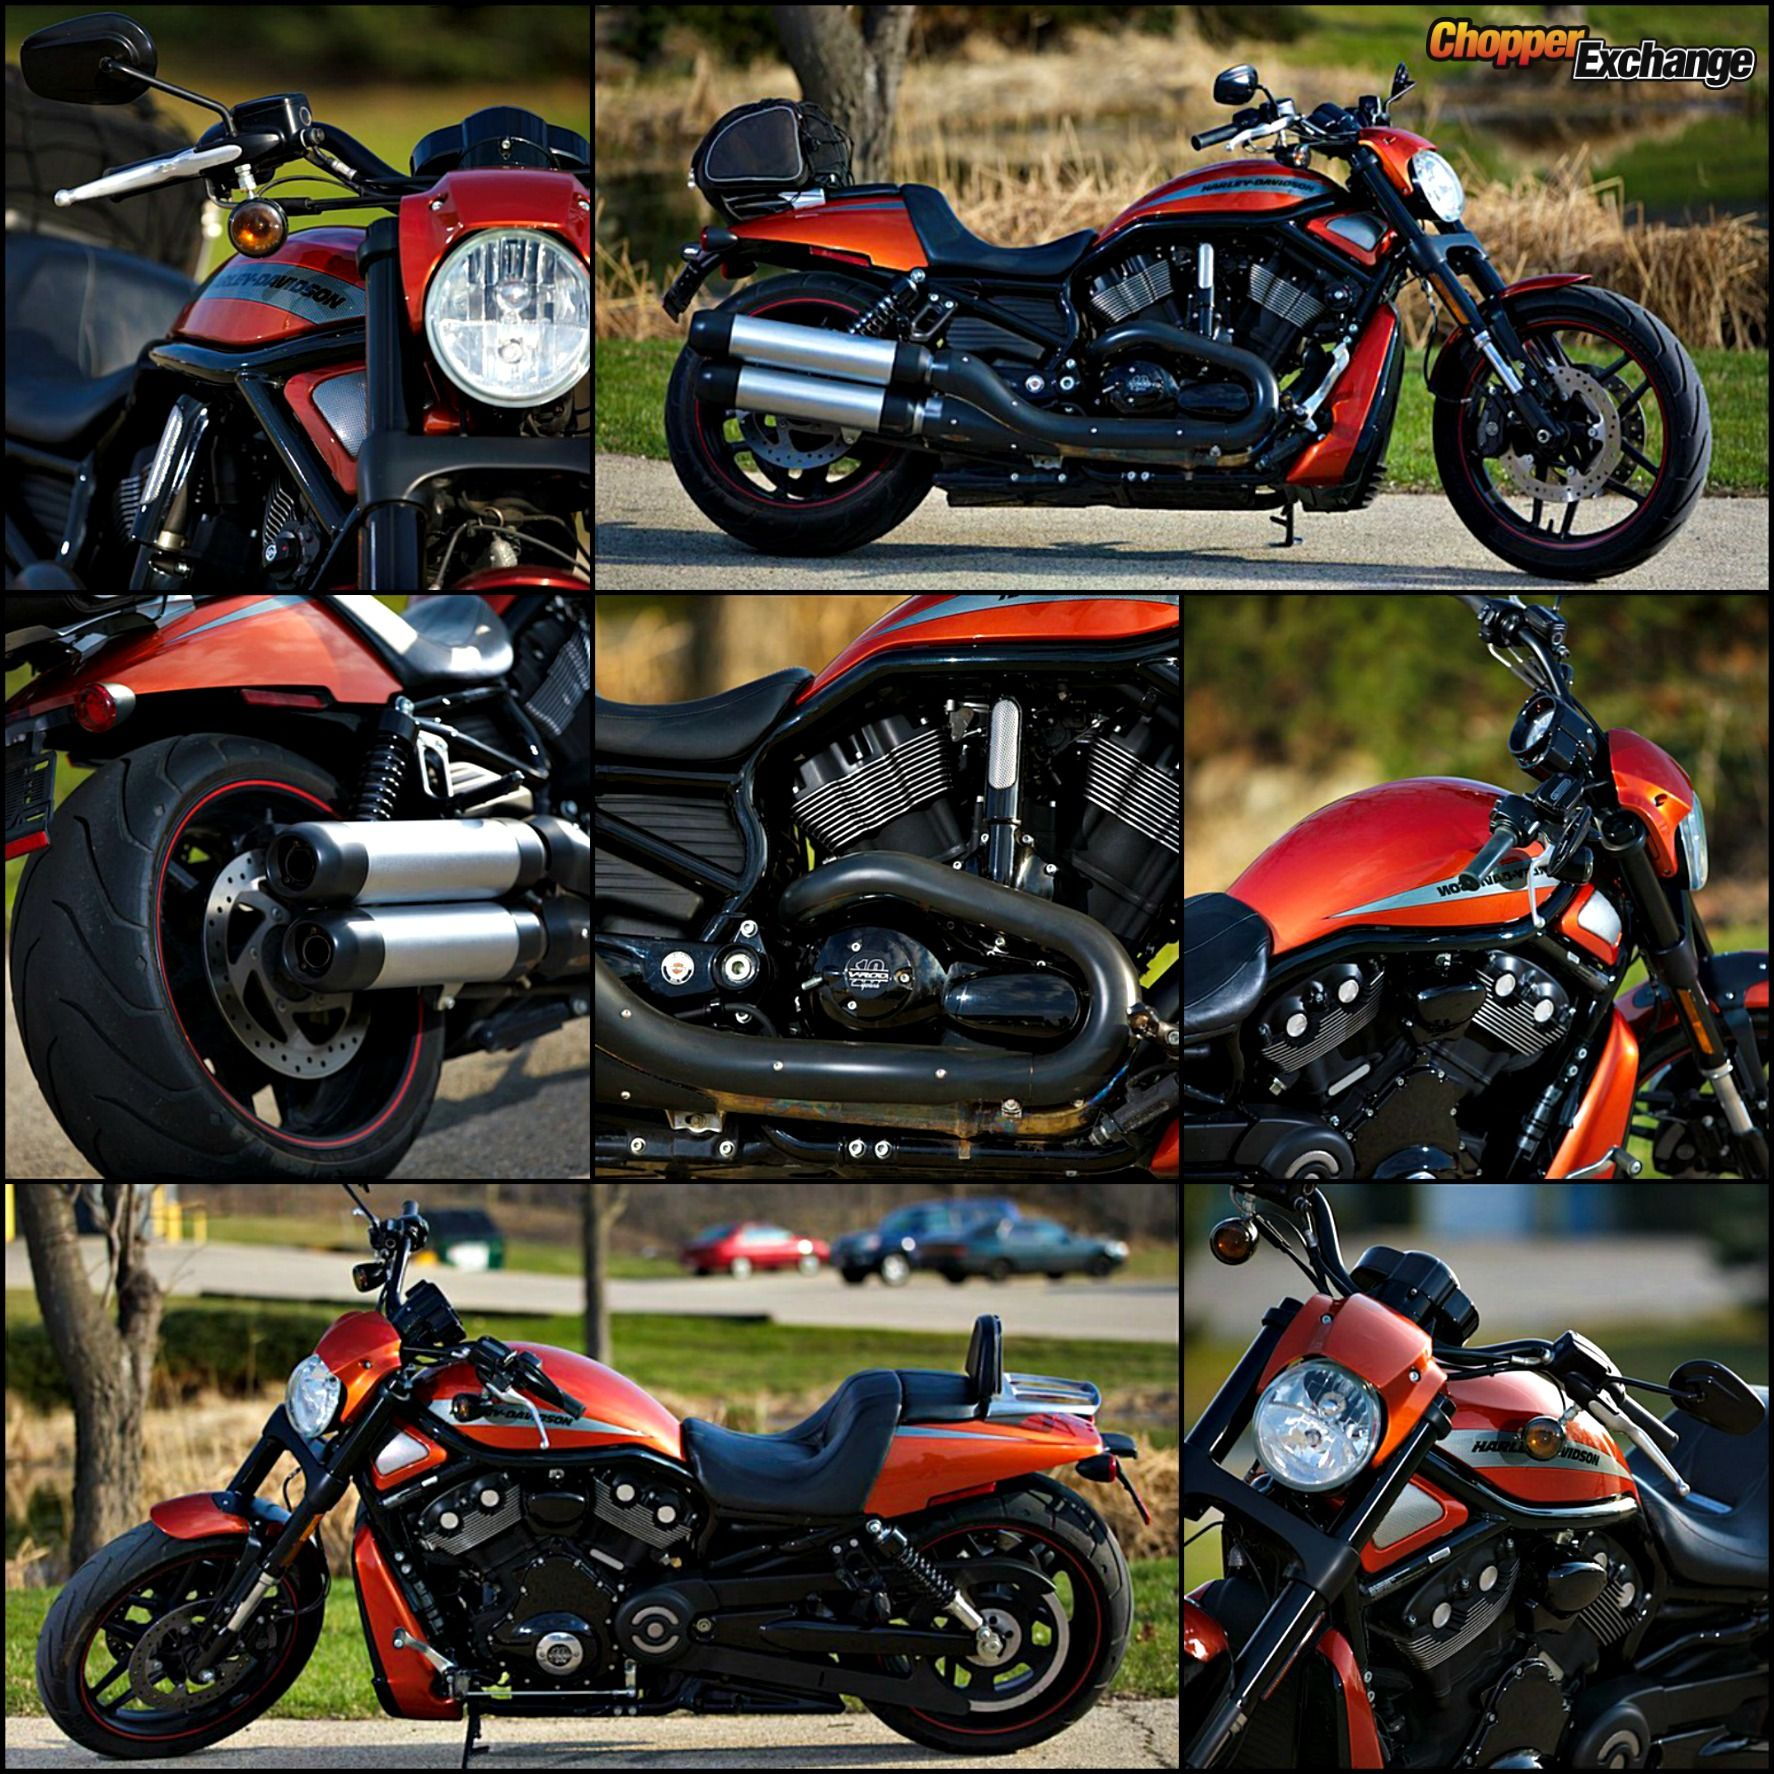 For Sale 2012 Harley Davidson V Rod Night Rod Special Action Power Sports Waukesha Wi Click The Image For Harley Bikes Harley Davidson Night Rod Special